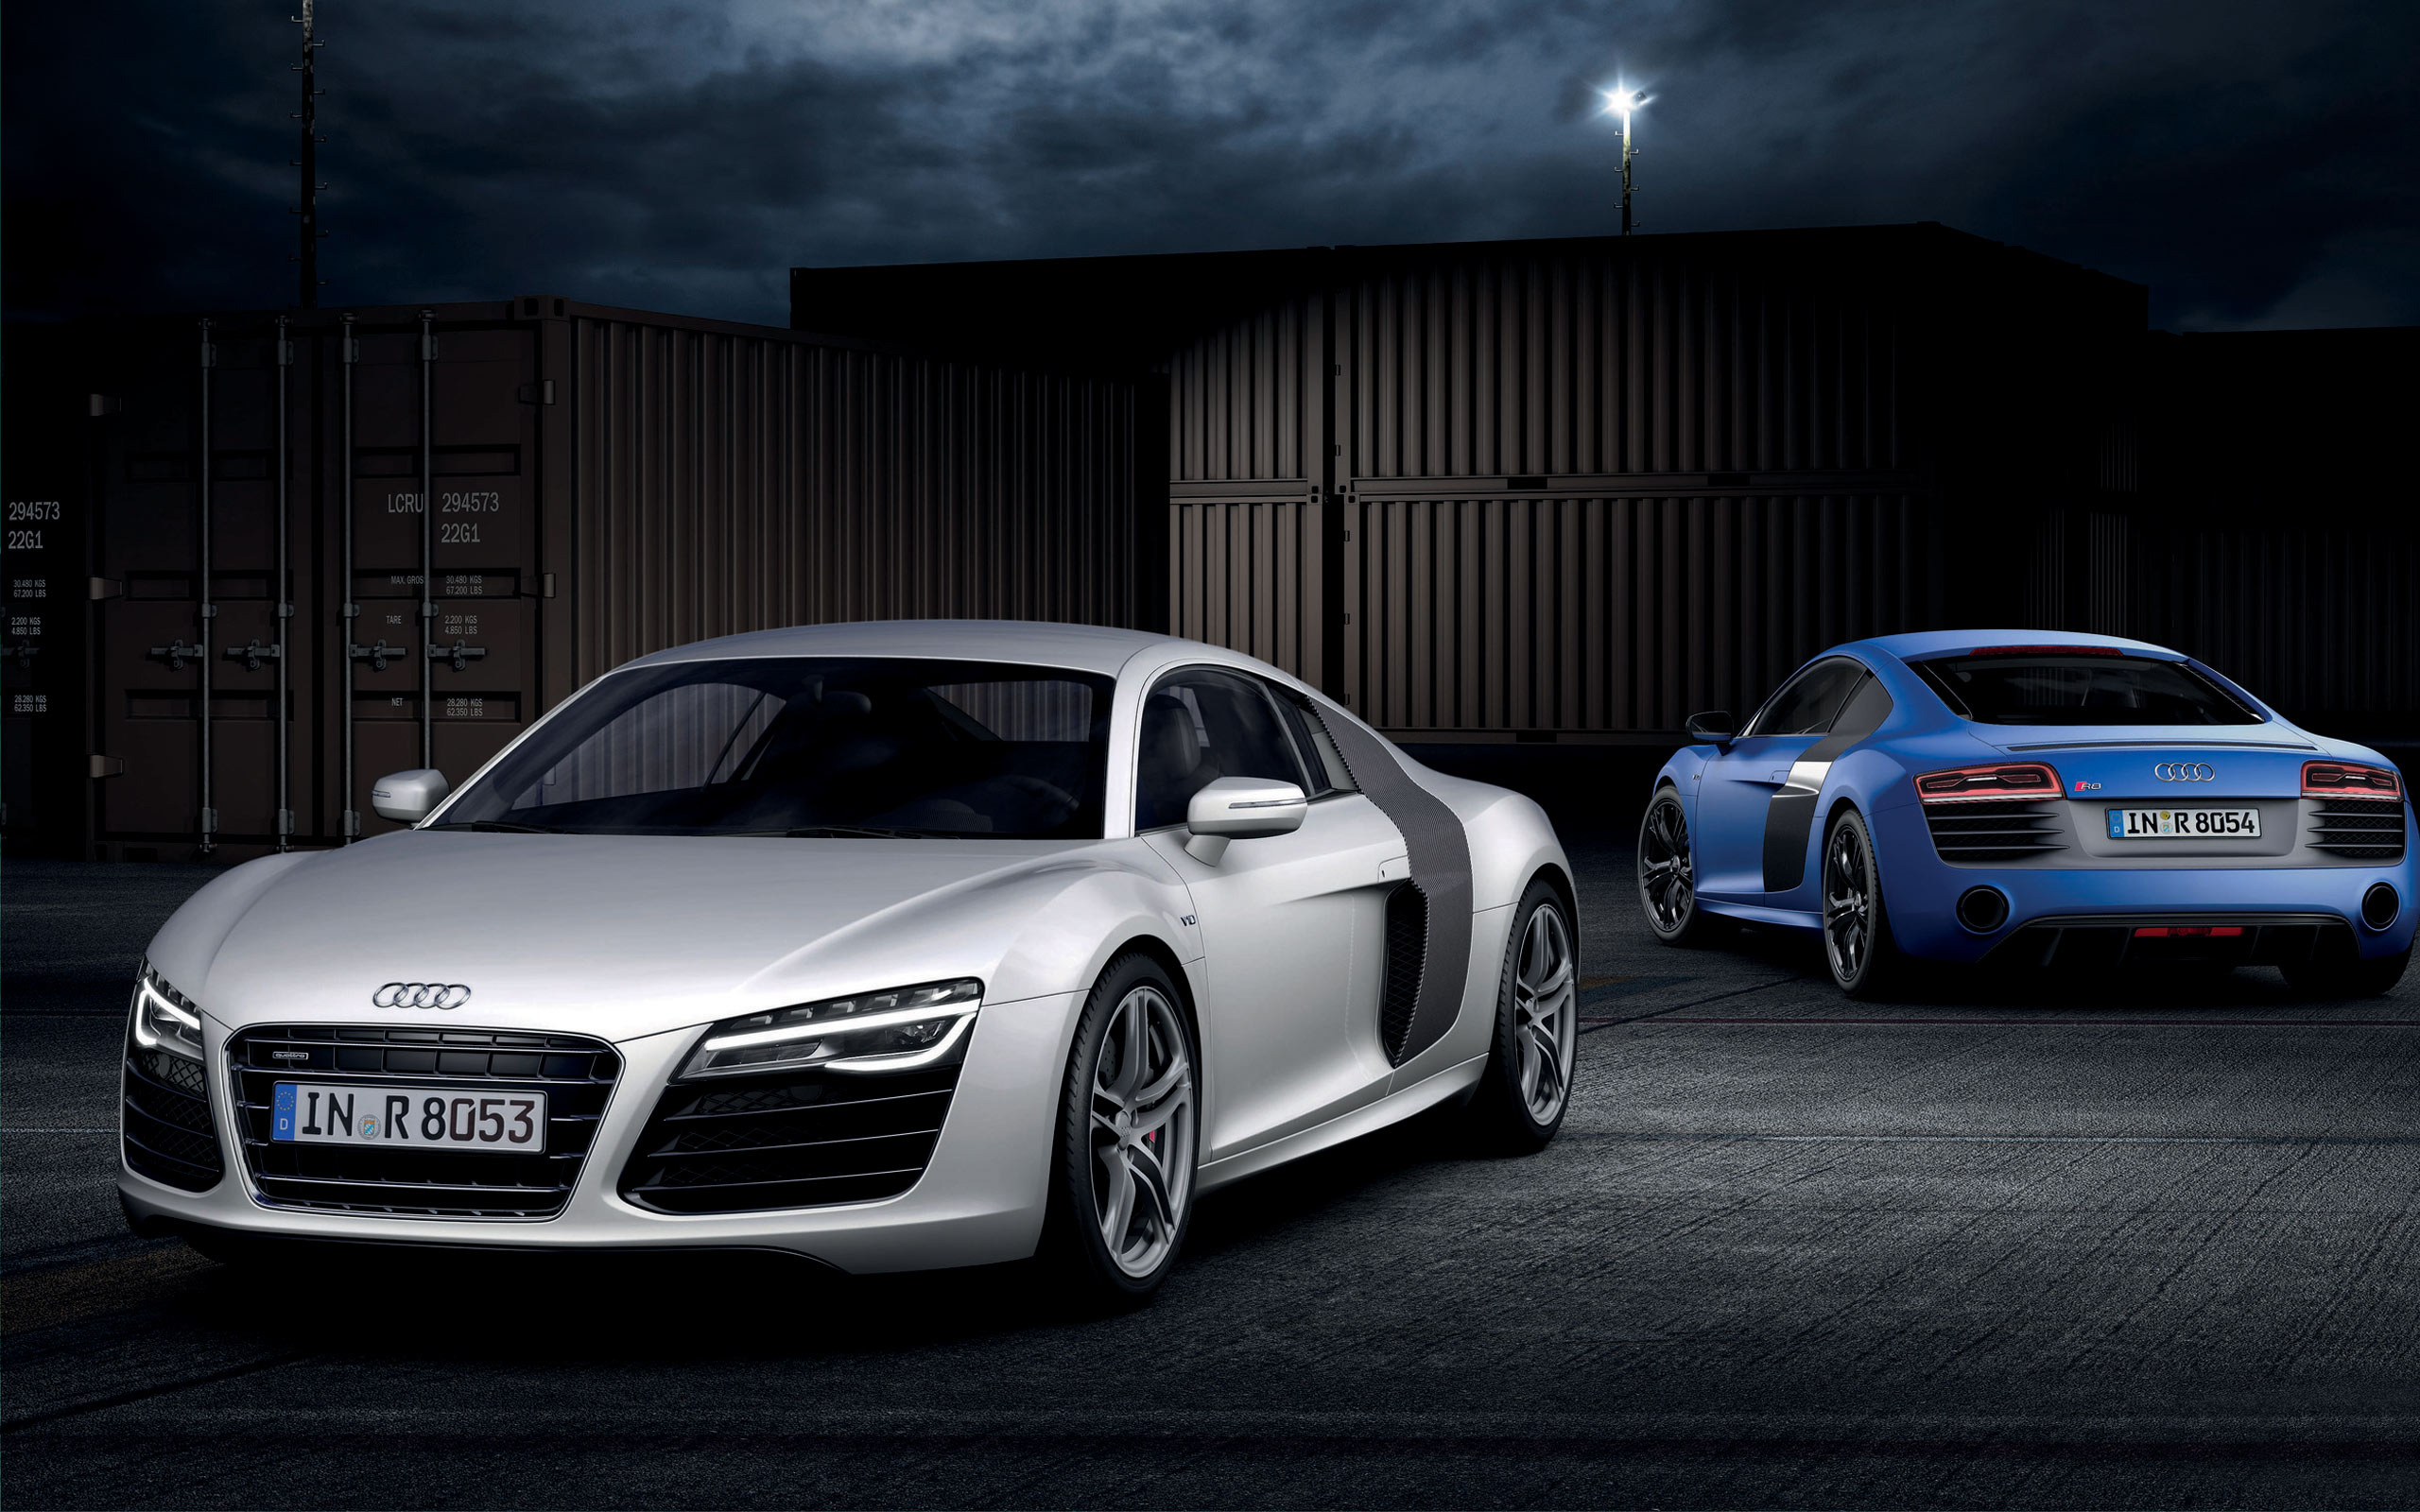 Blue and Silver Audi R8 2013 HD Wallpaper